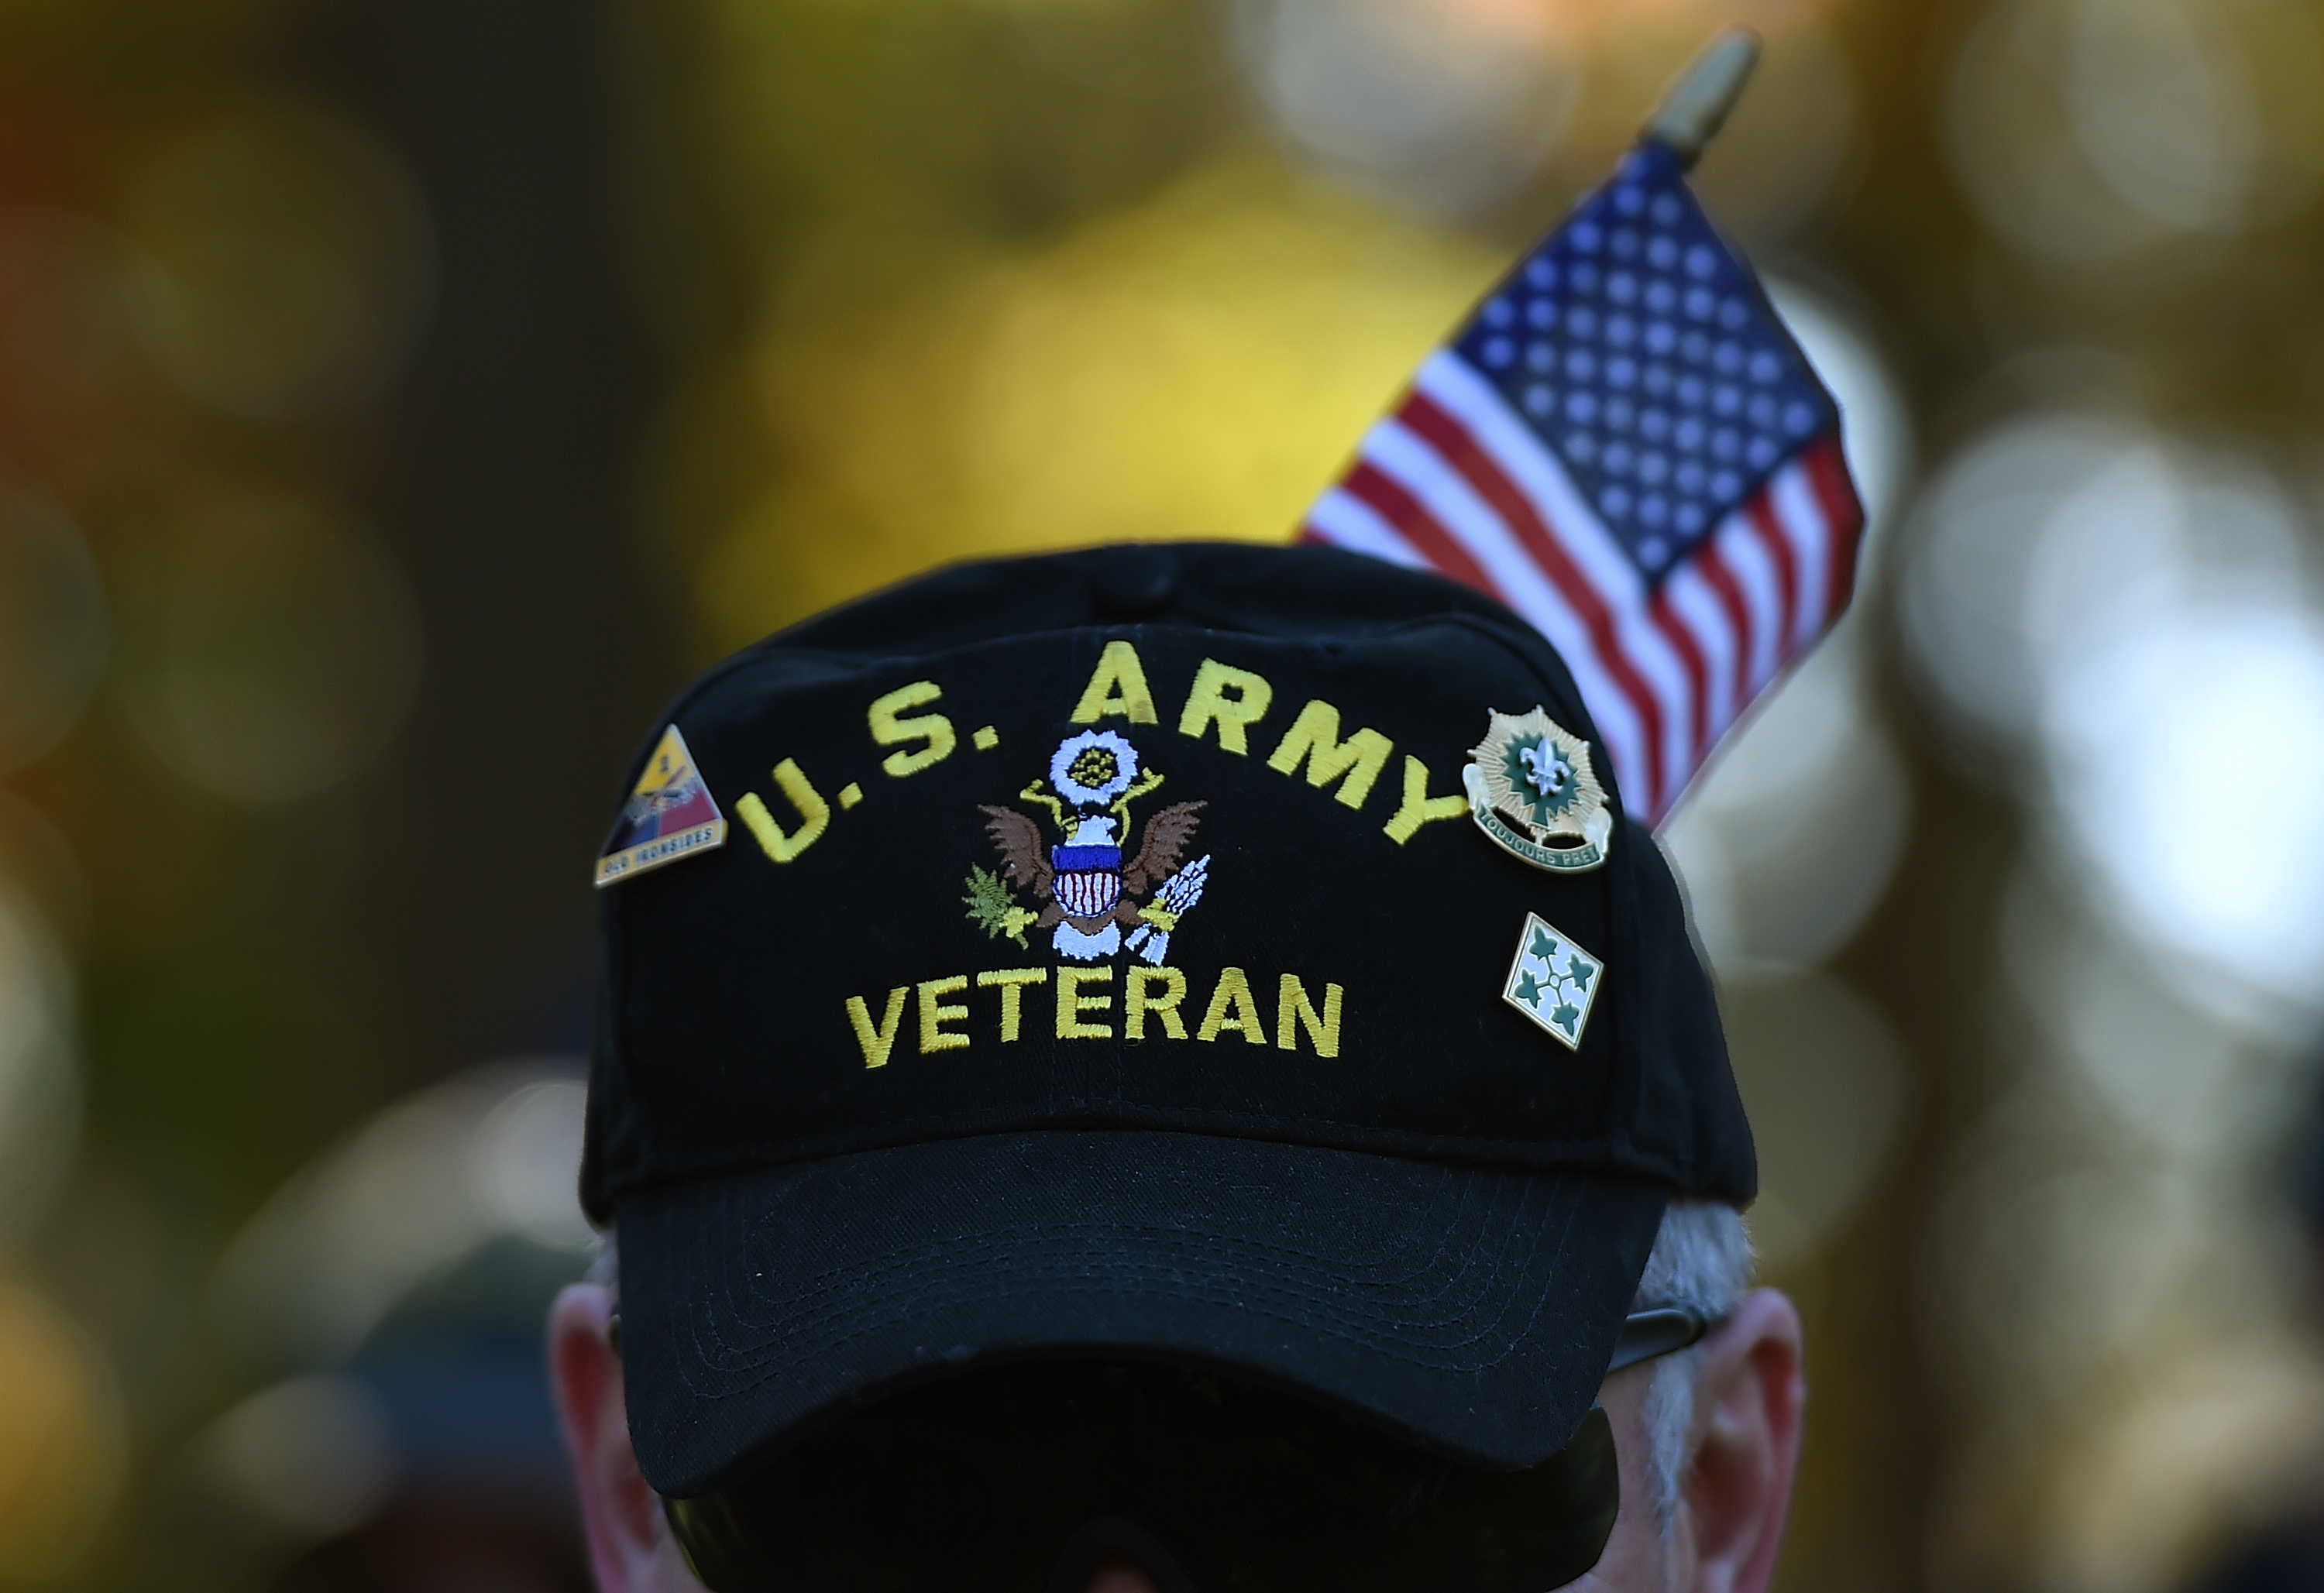 Gulf War veteran Bill Virill, retires U.S. Army, attends a Veterans Day ceremony at the Vietnam Veterans Memorial November 11, 2014 in Washington, DC. Win McNamee/Getty Images